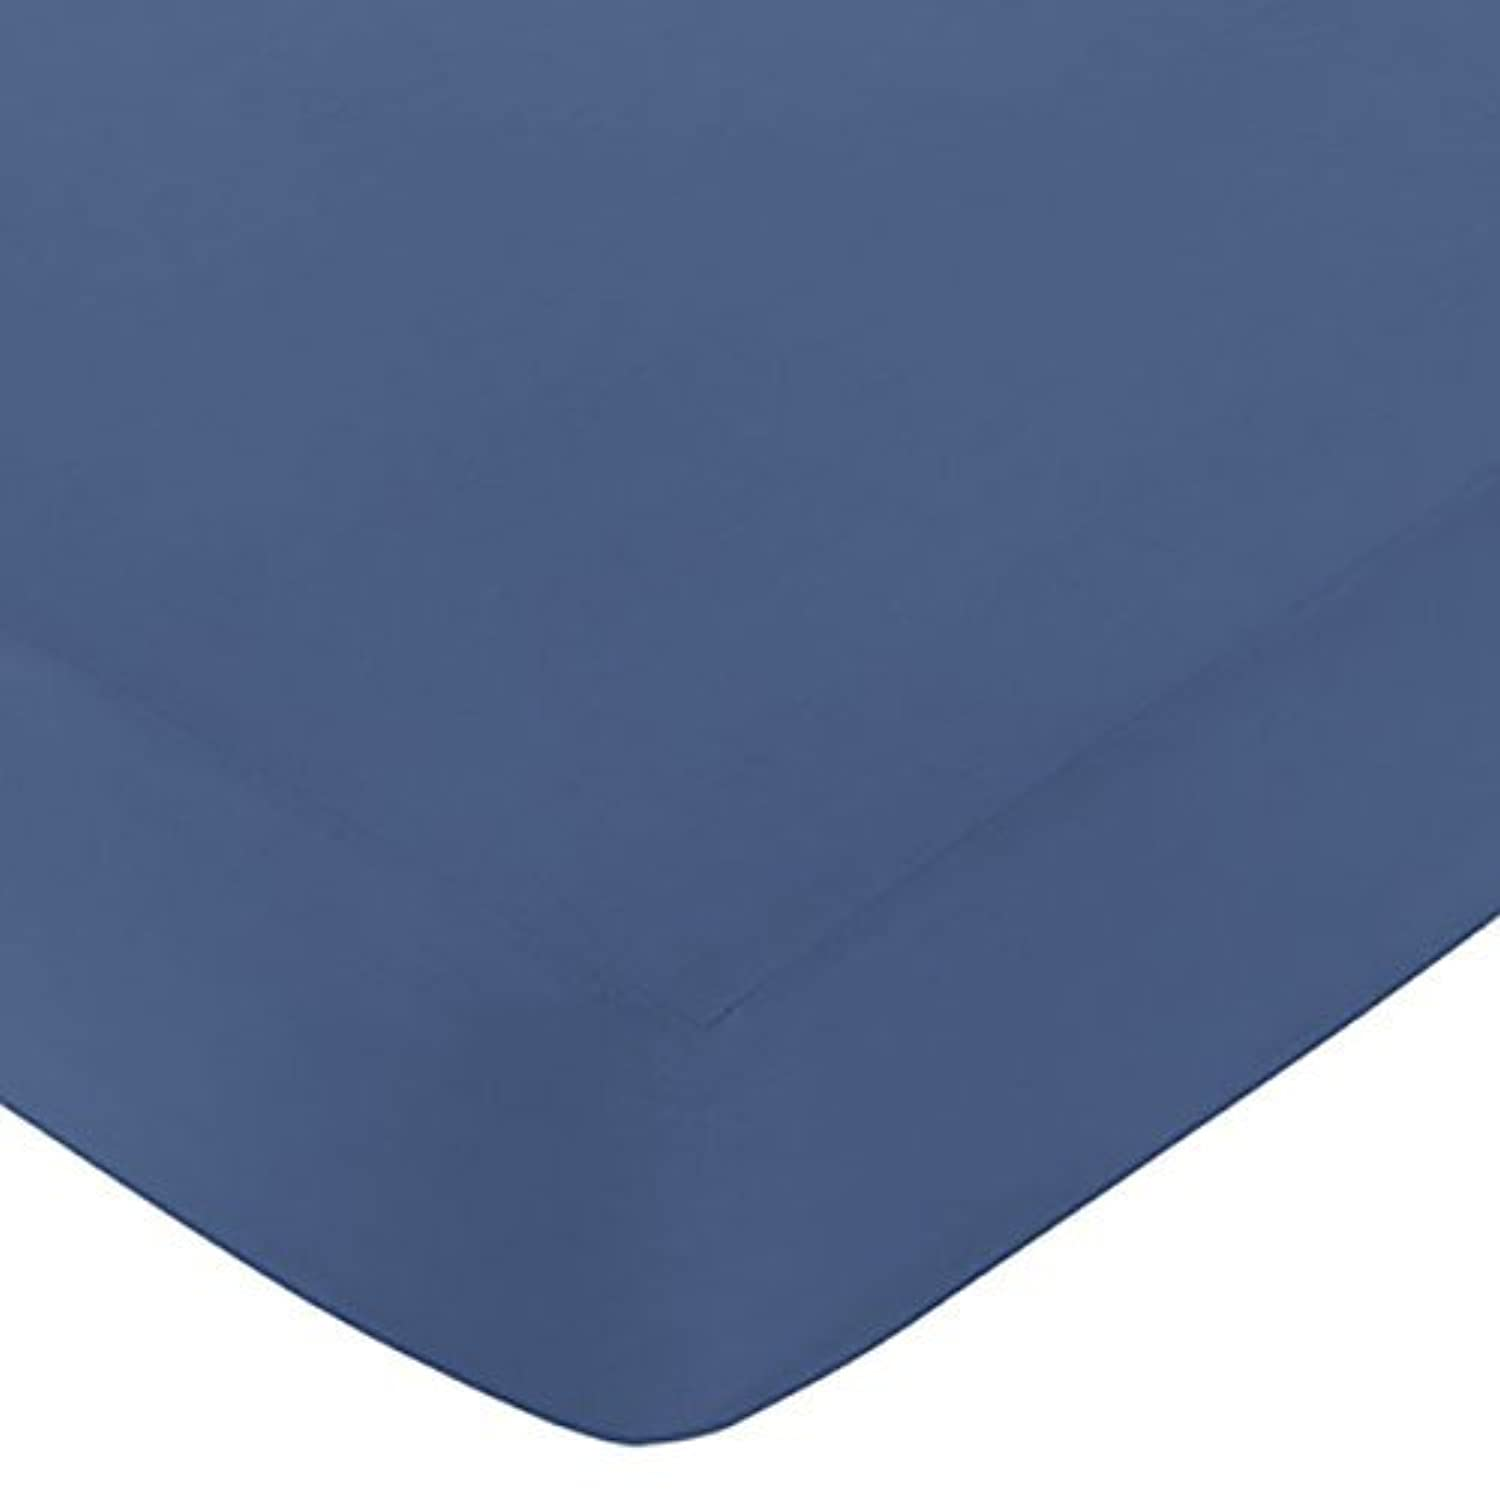 Sweet Jojo Designs Fitted Crib Sheet for Space Galaxy Baby/Toddler Bedding Set Collection - Light Blue [並行輸入品]